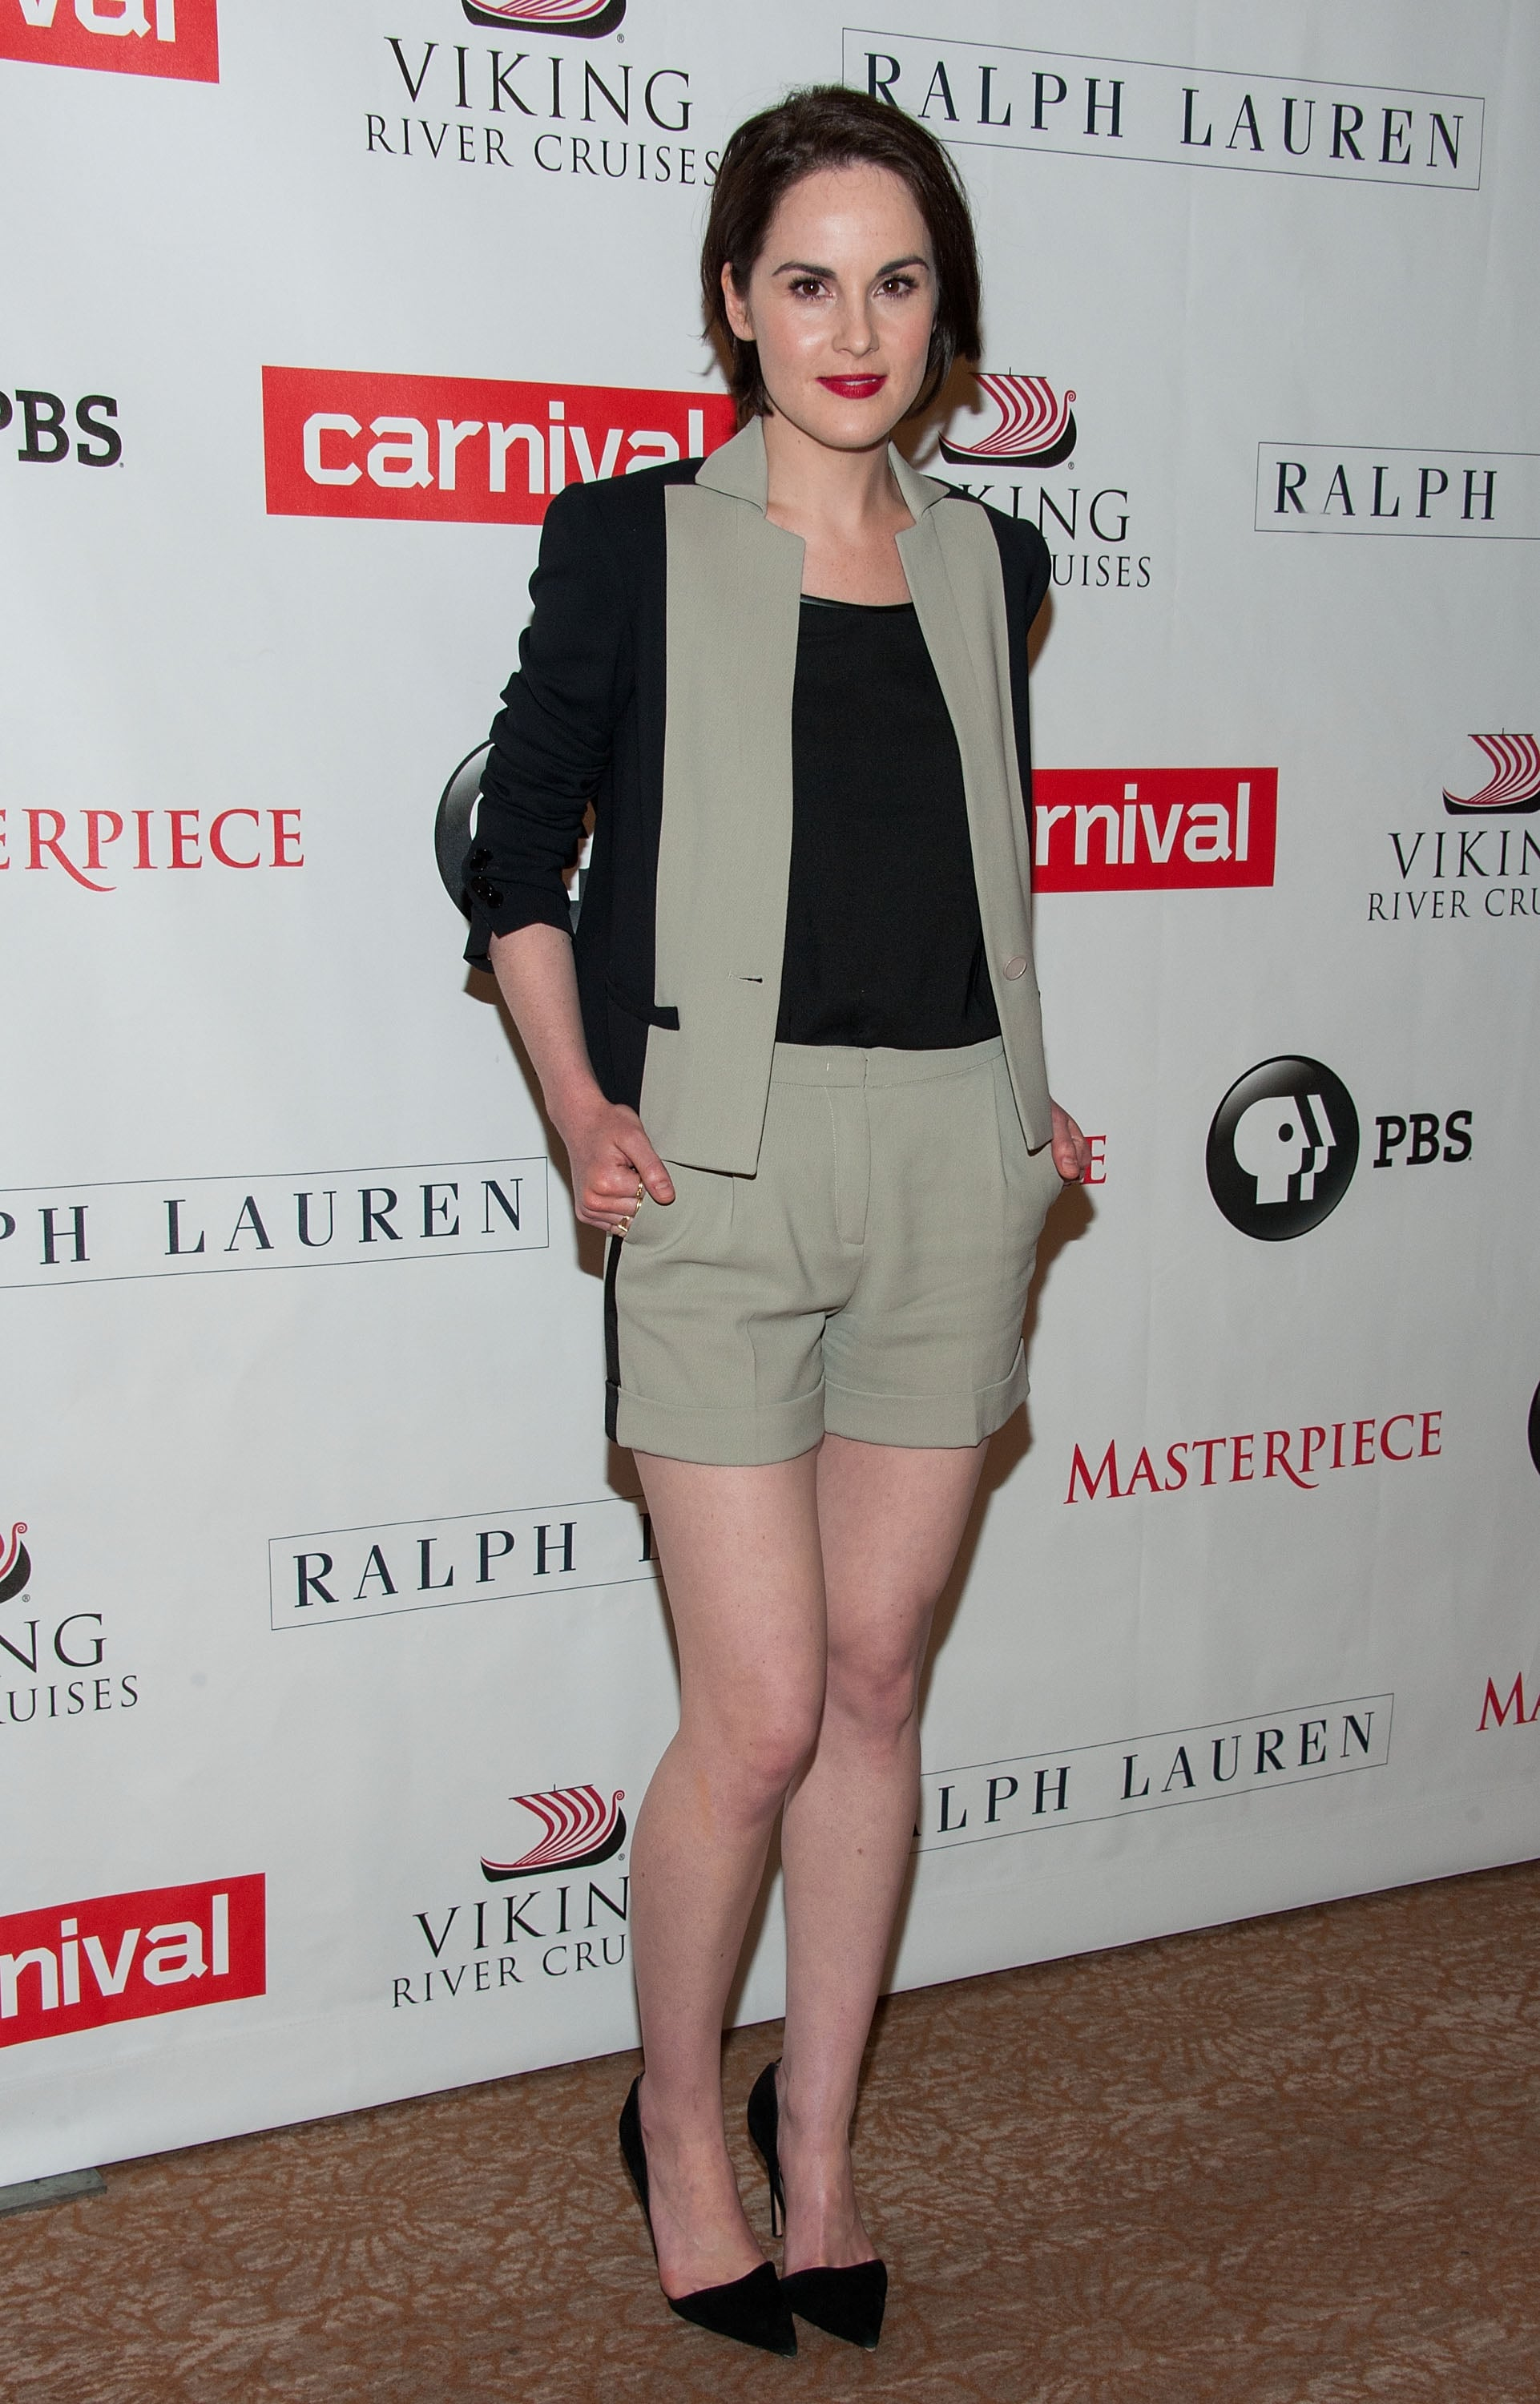 Michelle Dockery arrived for a Downton Abbey press event in Elie Saab's colorblock separates.